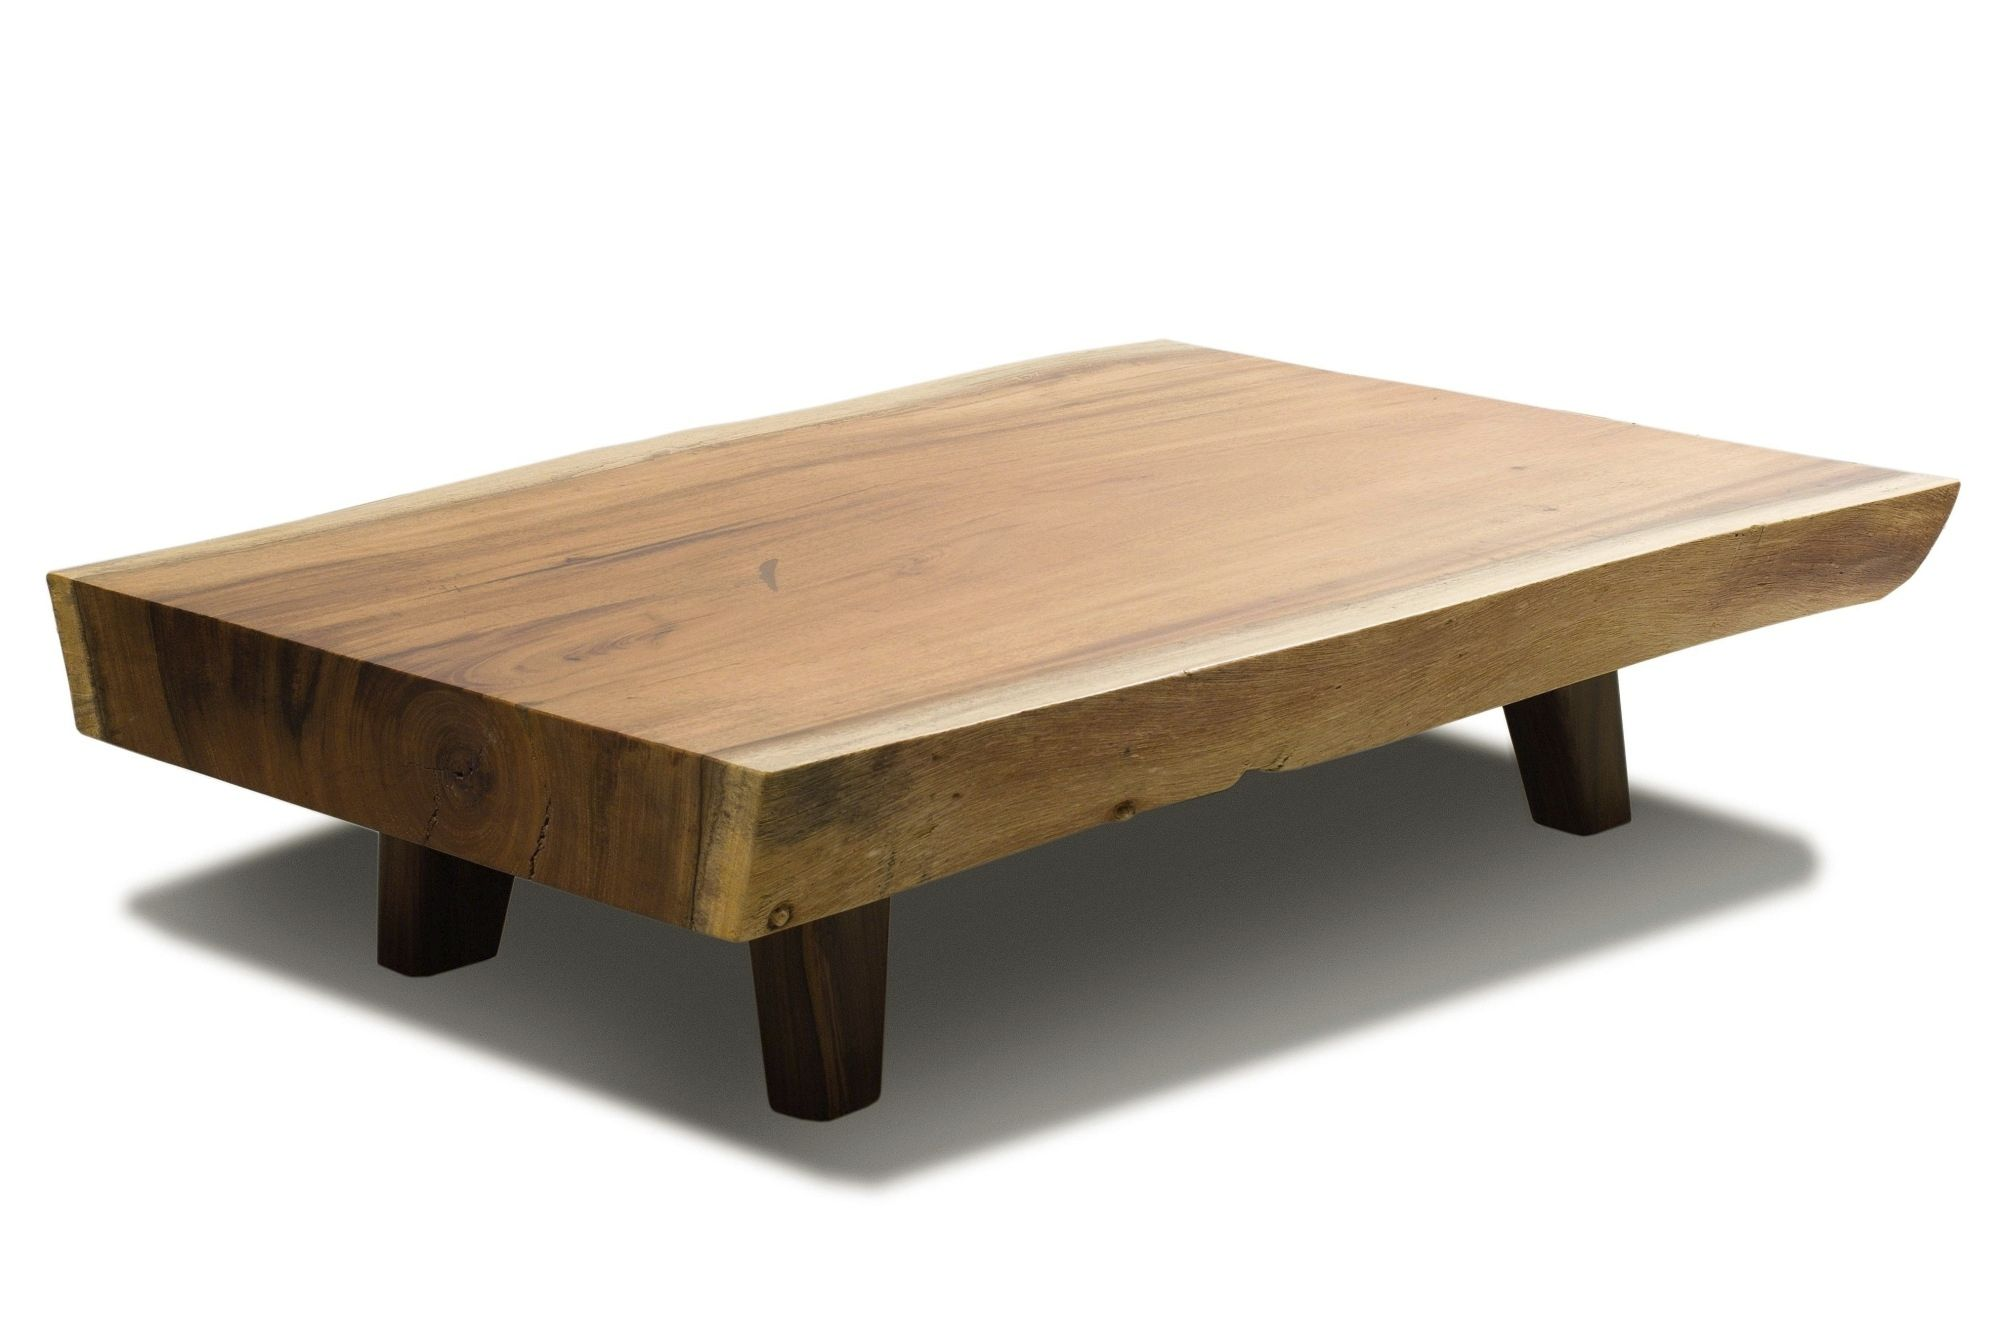 wooden coffee tables solid wood coffee table wooden center table TLRGCOX